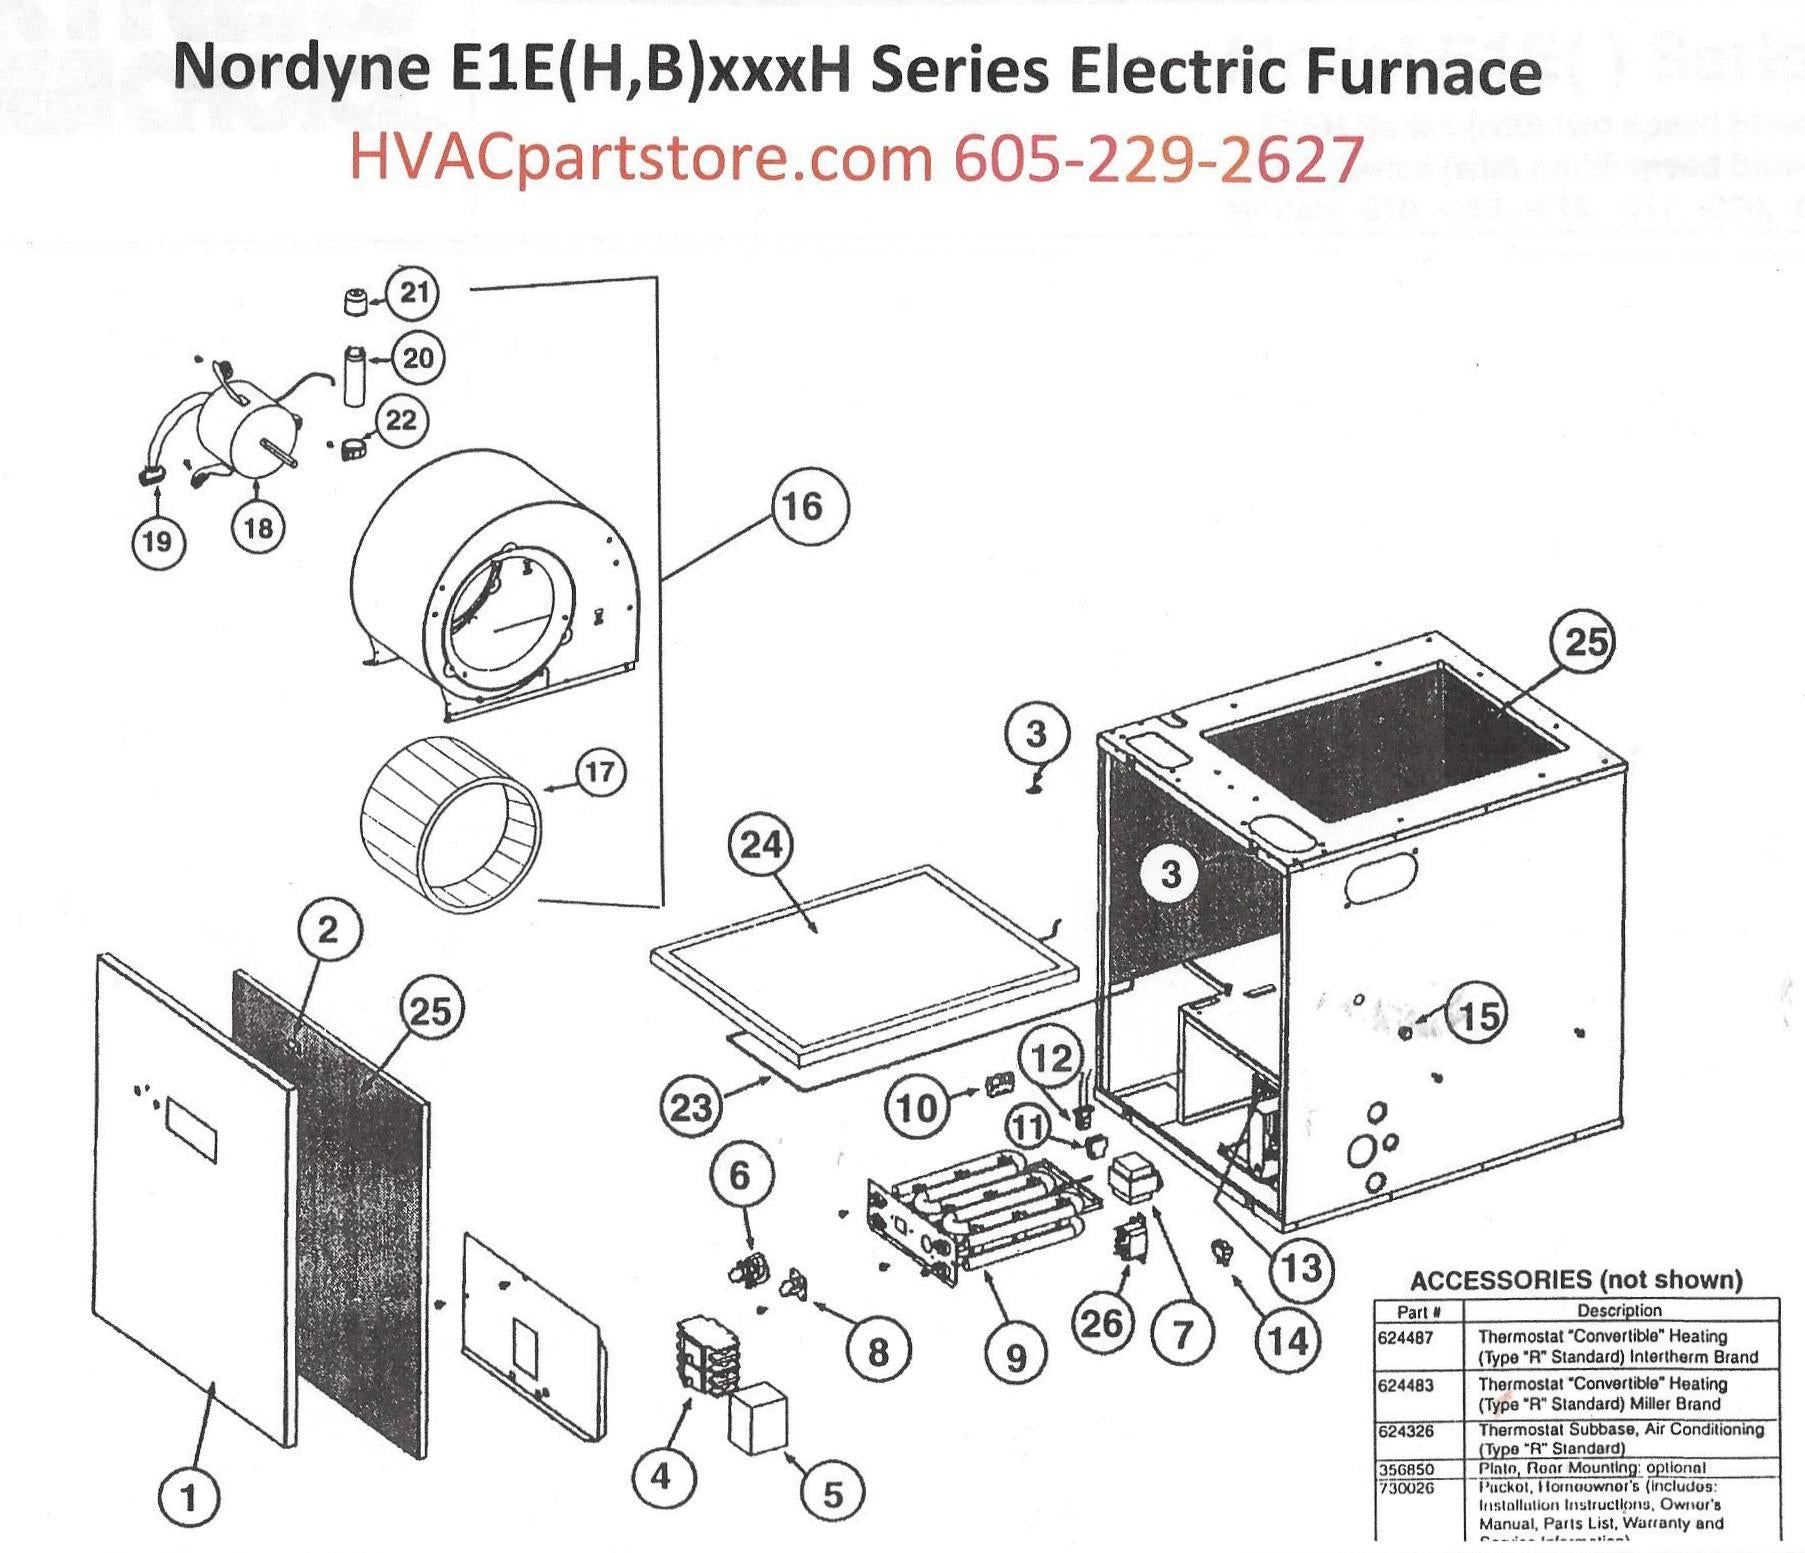 wiring diagram coleman electric furnace with E1eh012h Nordyne Electric Furnace Parts on 7970 856 Coleman Gas Furnace Parts likewise E moreover Furnaces also Eb20b Coleman Electric Furnace Parts additionally Go Power 30   Transfer Switch.